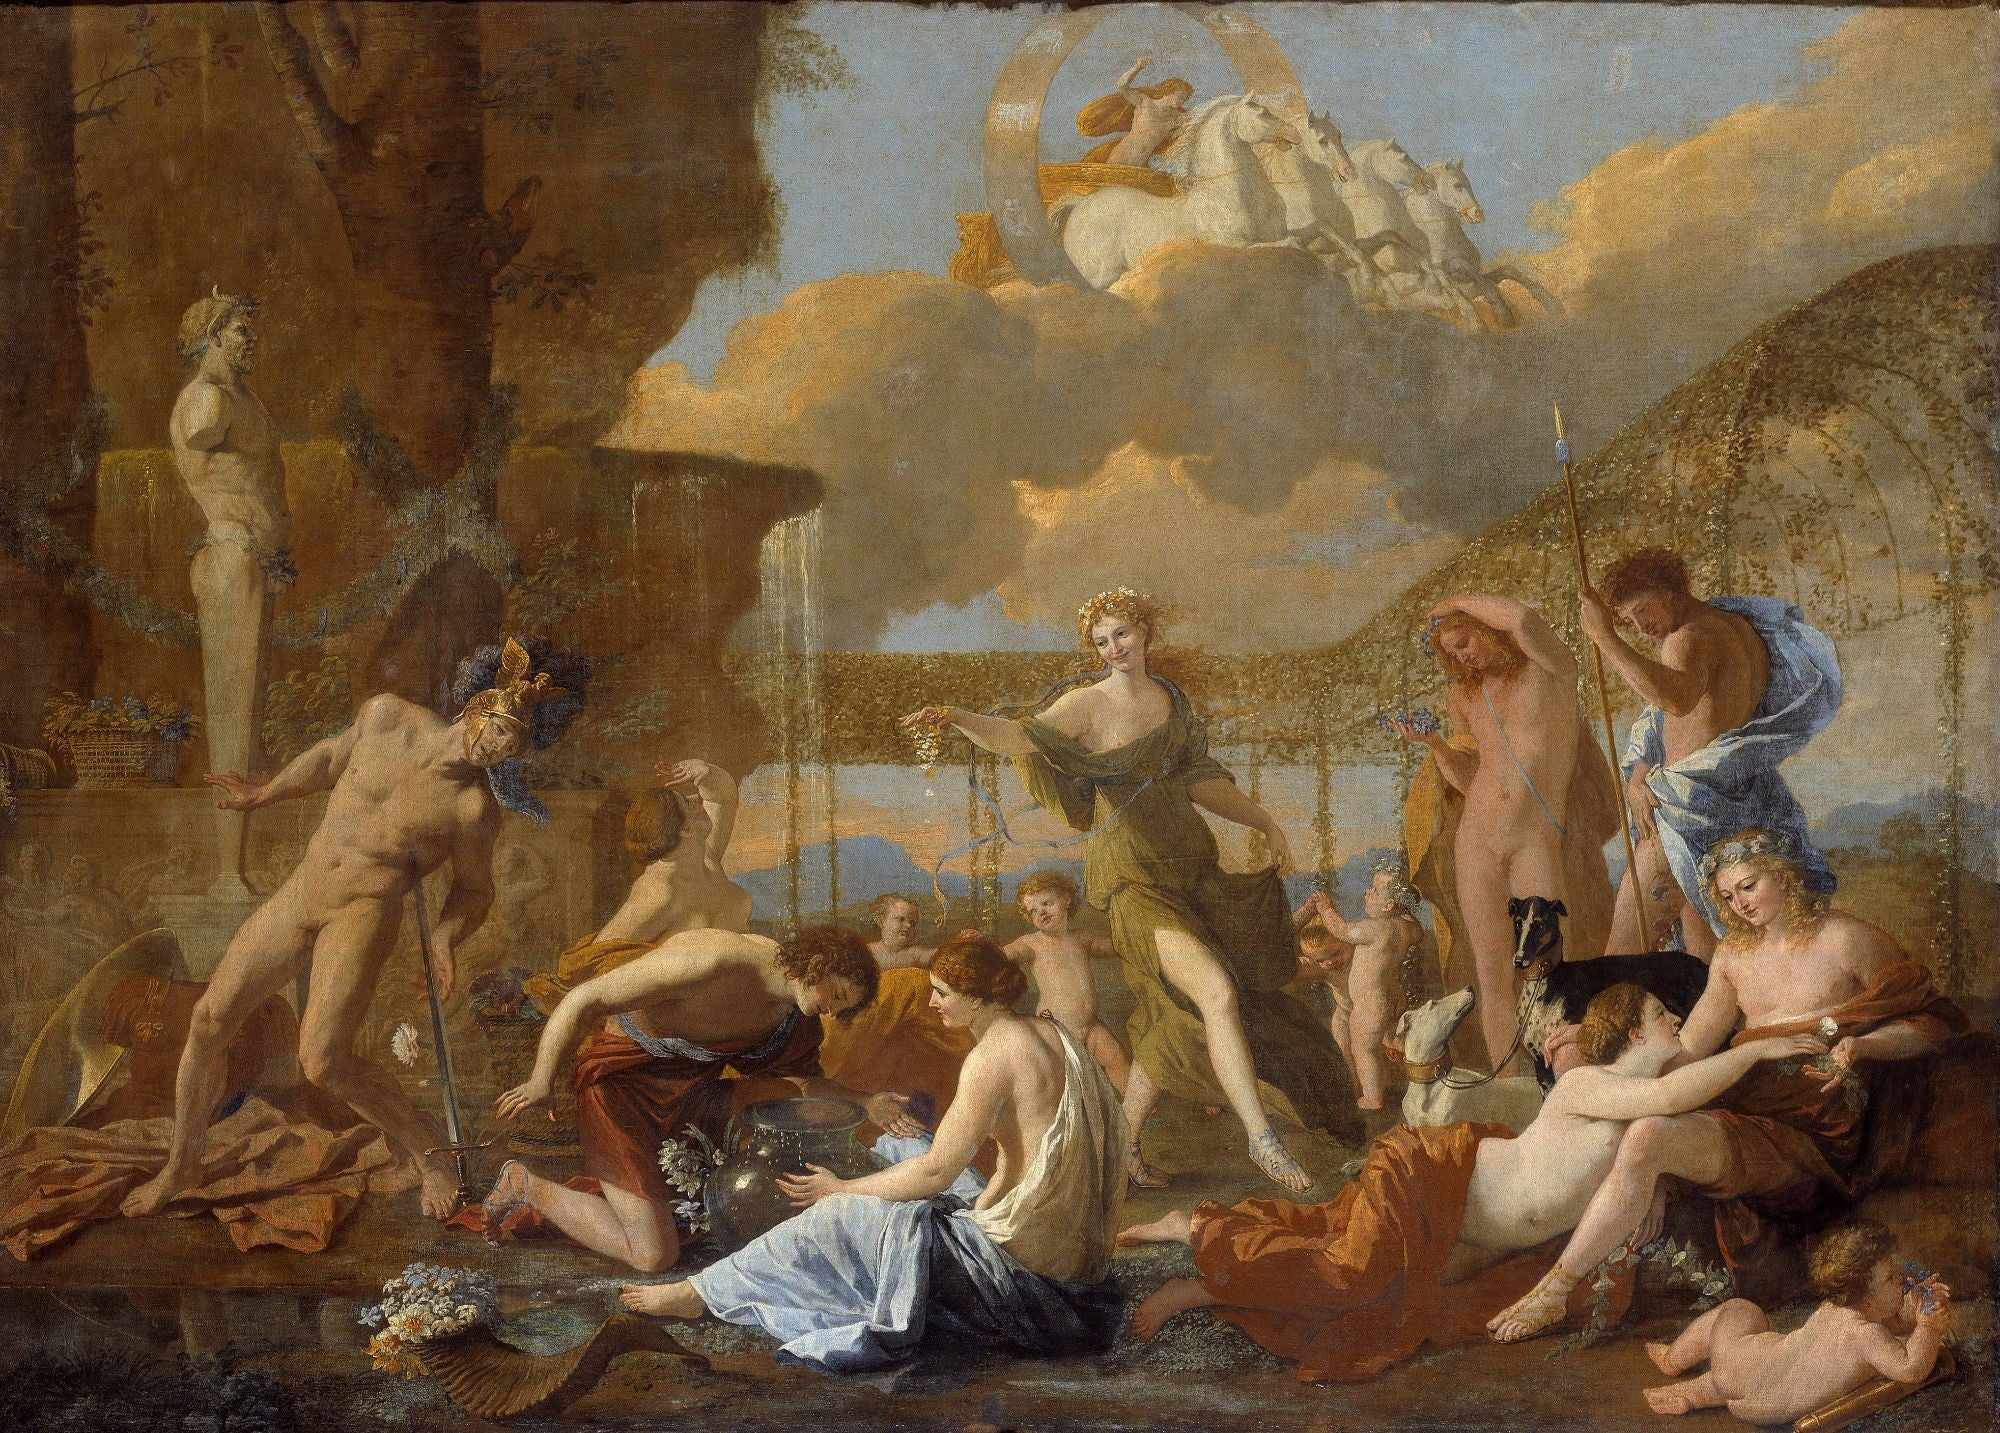 Nicolas Poussin | Buy Posters, Frames, Canvas, Digital Art & Large Size Prints Of The Famous Old Master's Artworks